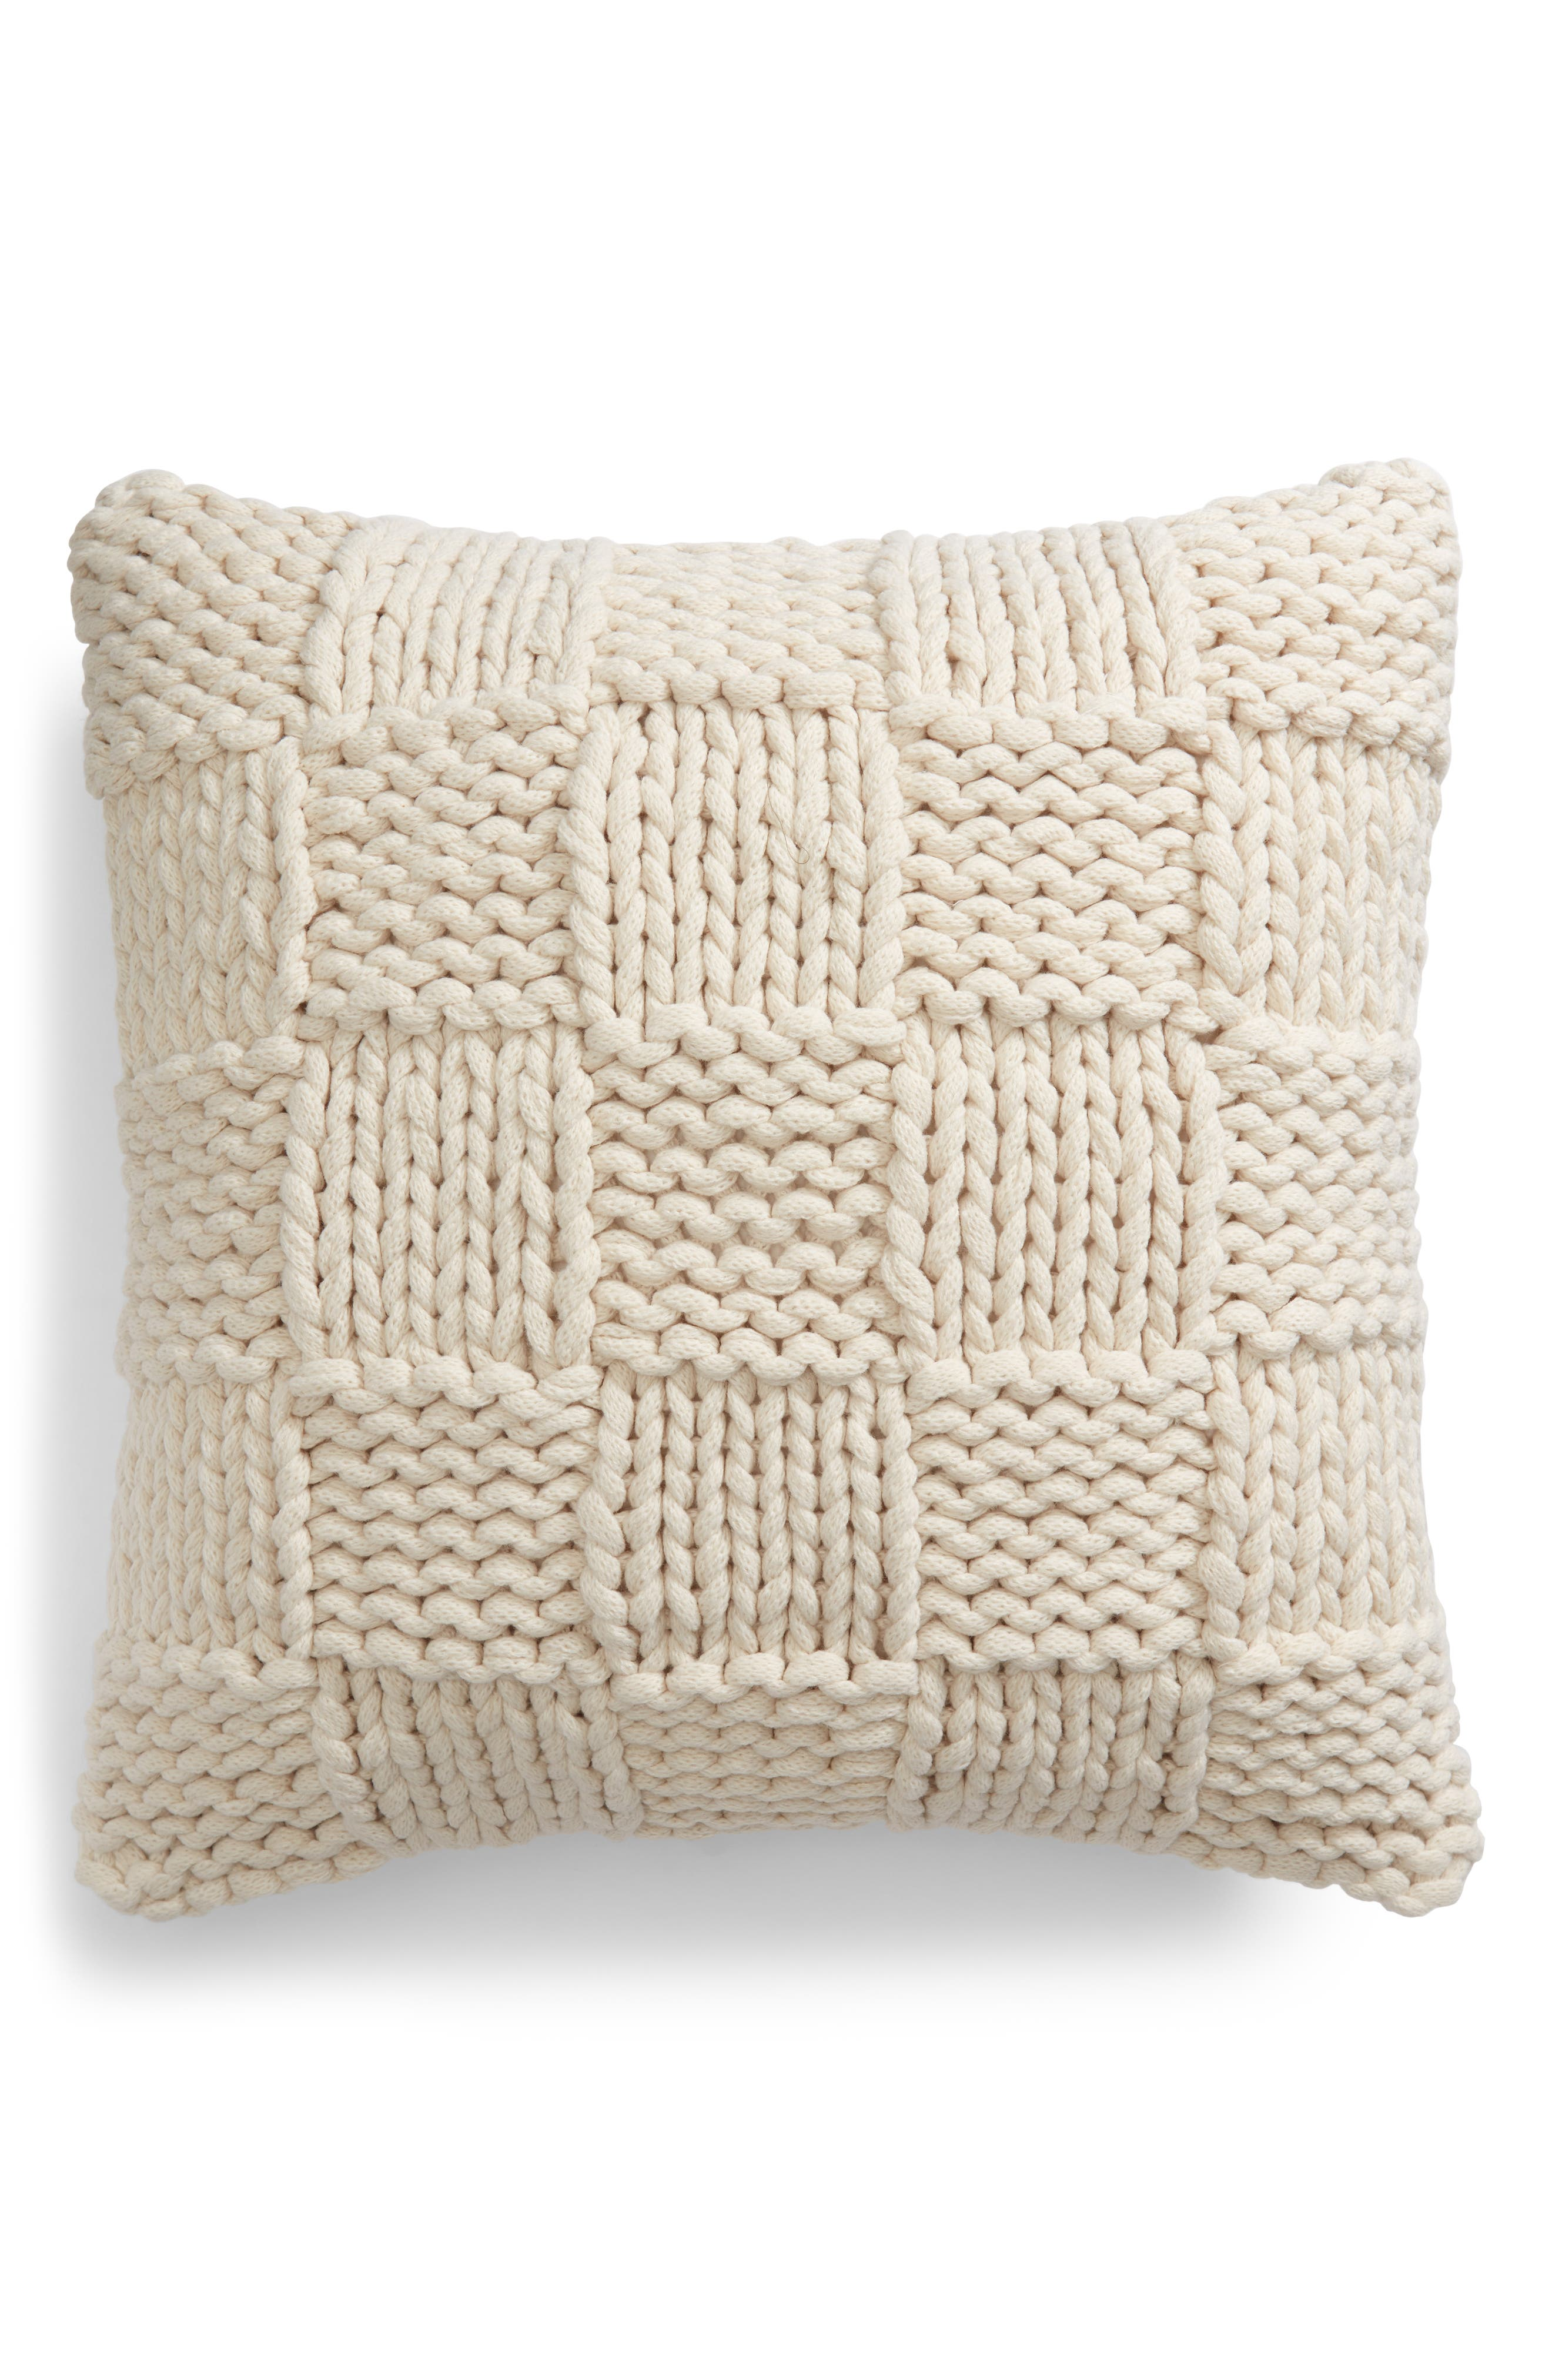 Jersey Rope Basket Accent Pillow,                         Main,                         color, IVORY